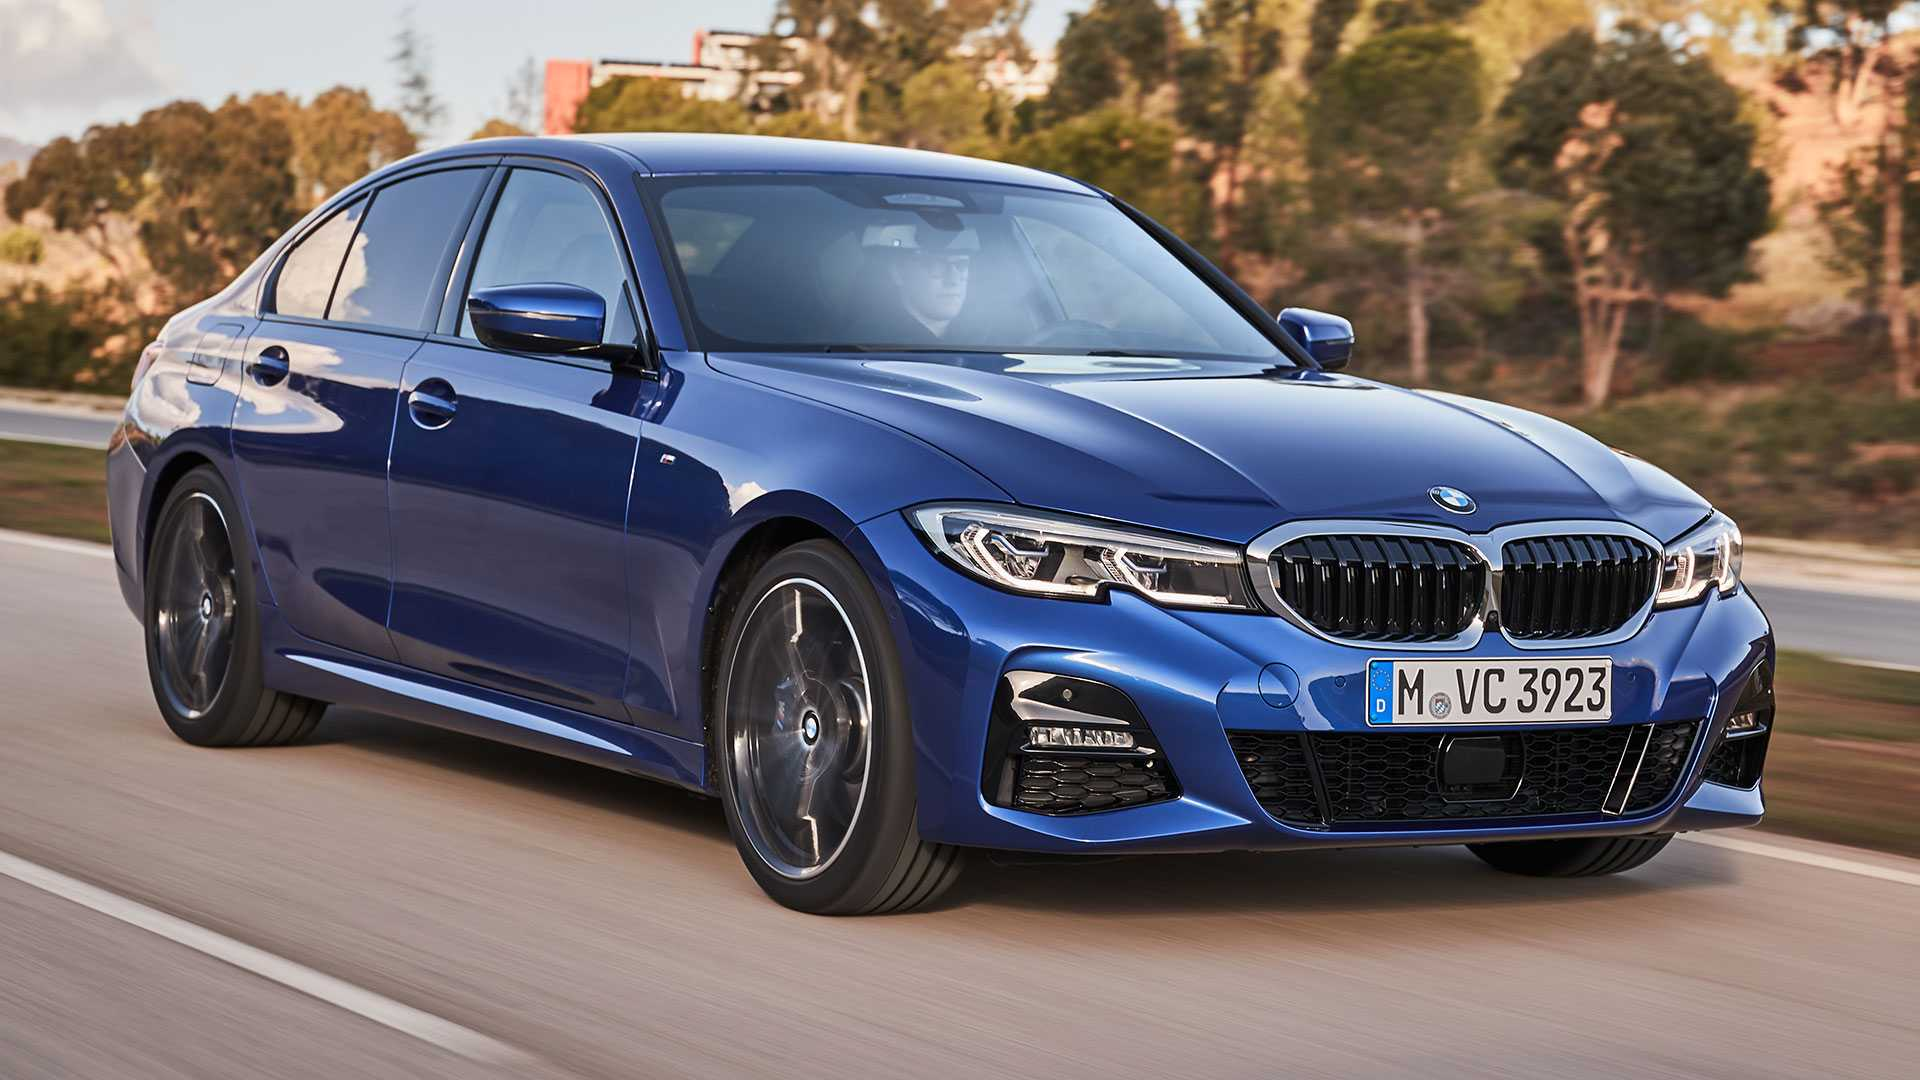 94 Concept of The Release Date Bmw 2019 First Drive Style for The Release Date Bmw 2019 First Drive